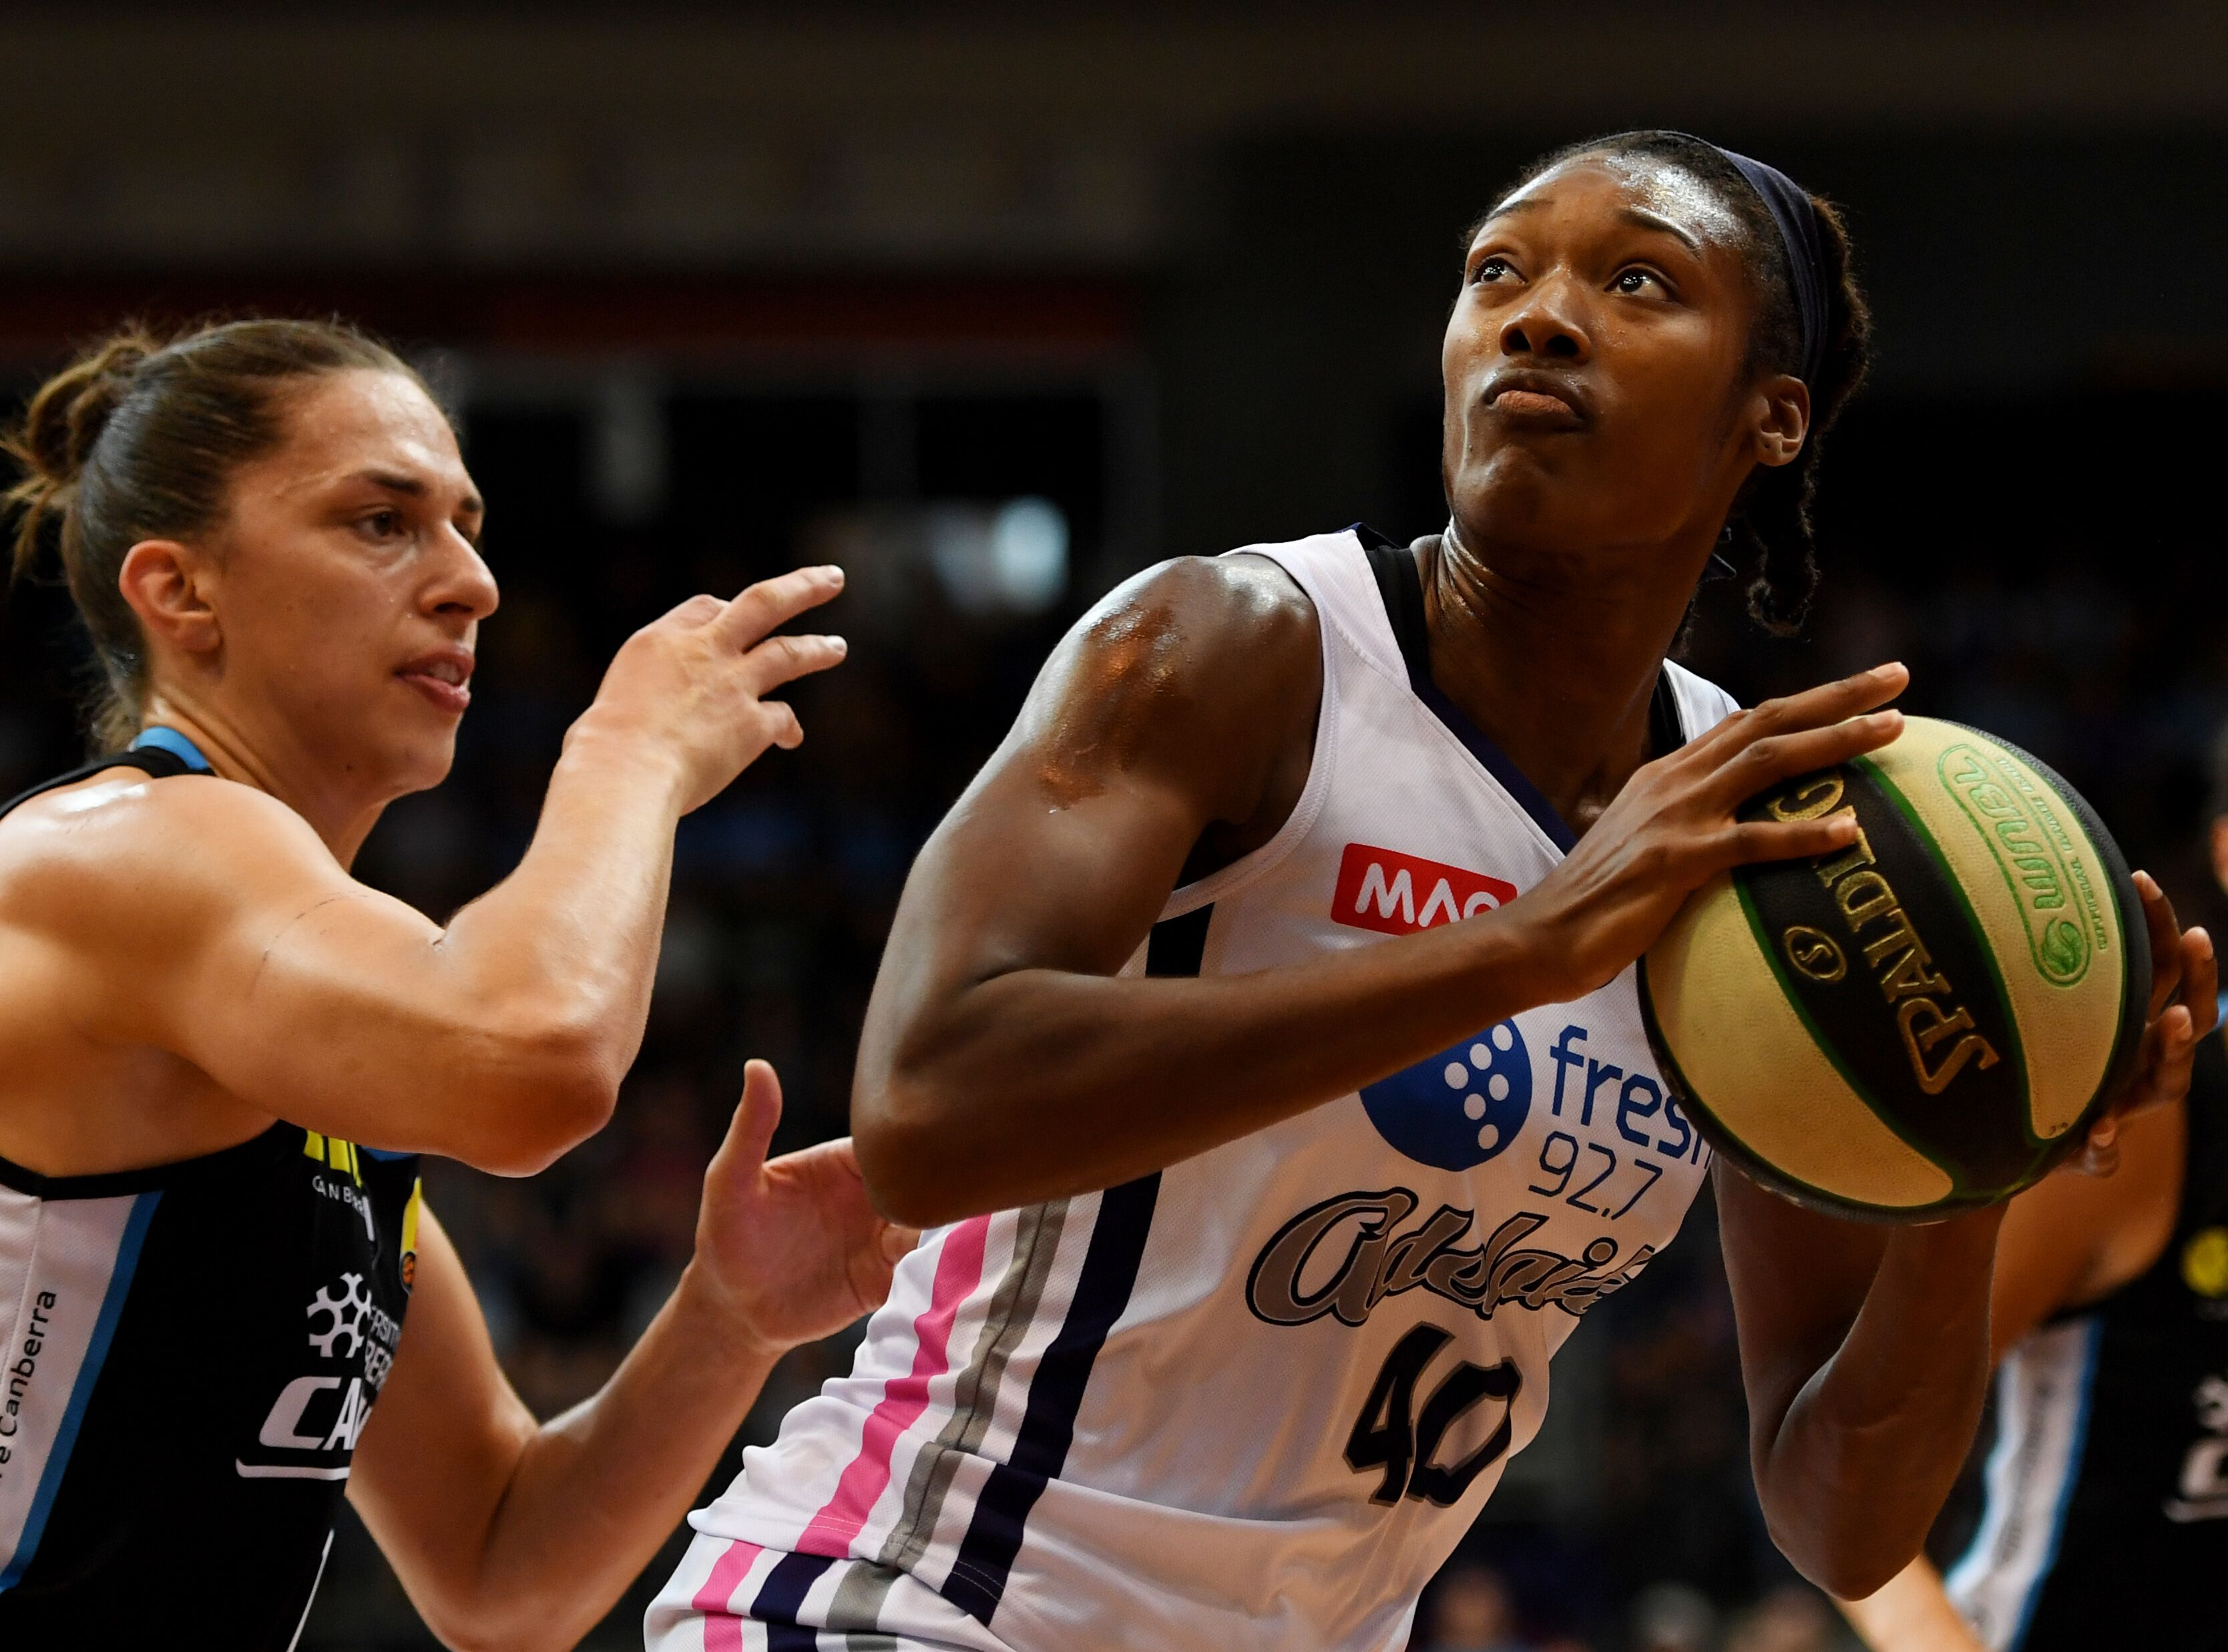 Kayla Alexander worked with Wade in four of her five seasons with the San Antonio Stars, who rebranded as the Las Vegas Aces in 2018, and averaged eight minutes per game with the Fever in 2018.